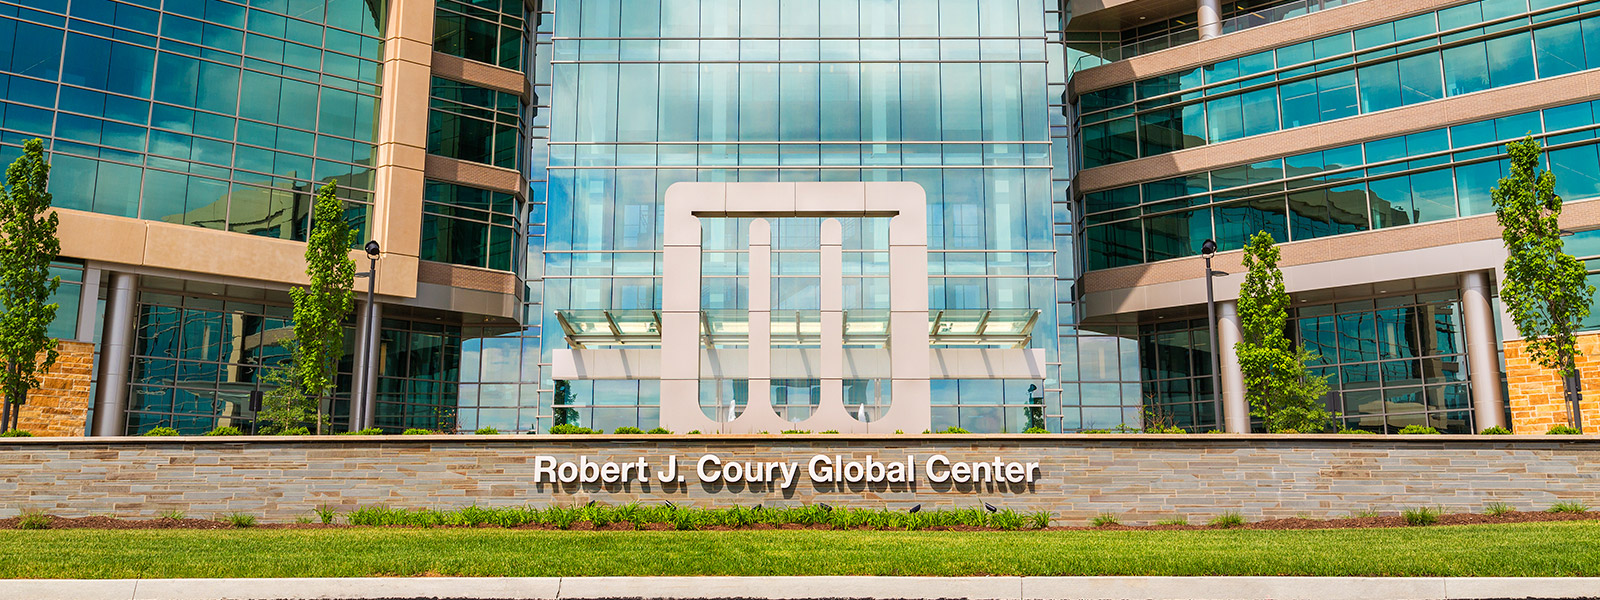 Robert J. Coury Global Center